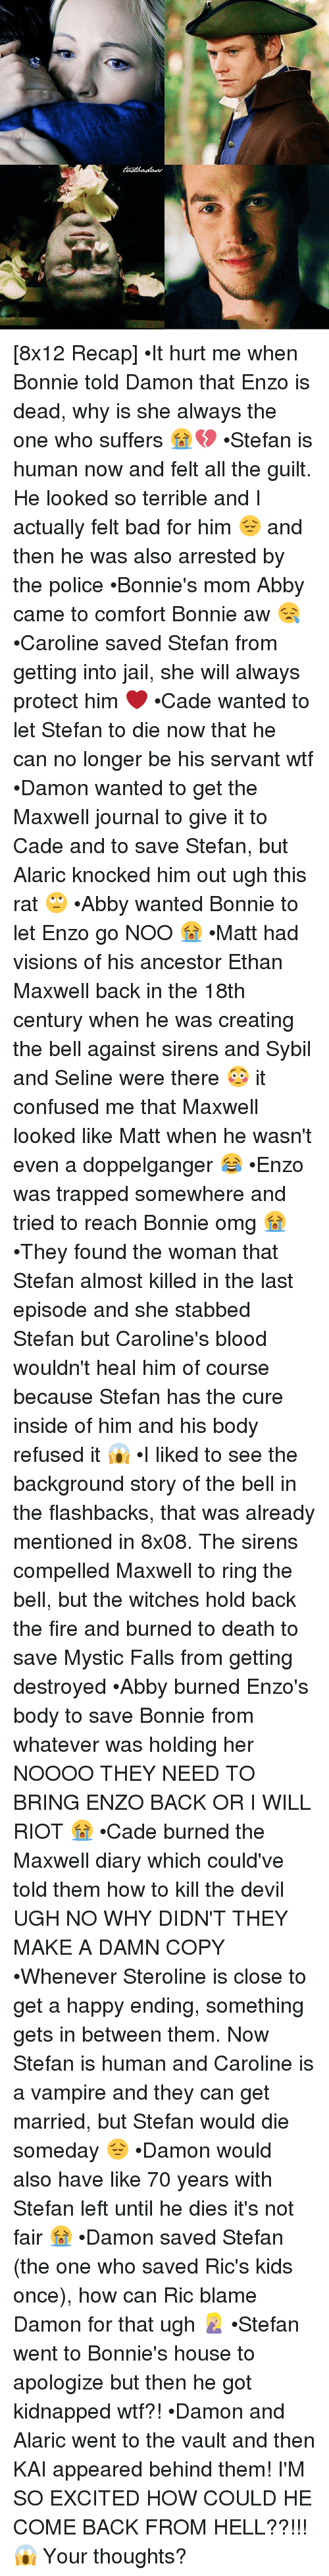 Terribler: [8x12 Recap] •It hurt me when Bonnie told Damon that Enzo is dead, why is she always the one who suffers 😭💔 •Stefan is human now and felt all the guilt. He looked so terrible and I actually felt bad for him 😔 and then he was also arrested by the police •Bonnie's mom Abby came to comfort Bonnie aw 😪 •Caroline saved Stefan from getting into jail, she will always protect him ❤ •Cade wanted to let Stefan to die now that he can no longer be his servant wtf •Damon wanted to get the Maxwell journal to give it to Cade and to save Stefan, but Alaric knocked him out ugh this rat 🙄 •Abby wanted Bonnie to let Enzo go NOO 😭 •Matt had visions of his ancestor Ethan Maxwell back in the 18th century when he was creating the bell against sirens and Sybil and Seline were there 😳 it confused me that Maxwell looked like Matt when he wasn't even a doppelganger 😂 •Enzo was trapped somewhere and tried to reach Bonnie omg 😭 •They found the woman that Stefan almost killed in the last episode and she stabbed Stefan but Caroline's blood wouldn't heal him of course because Stefan has the cure inside of him and his body refused it 😱 •I liked to see the background story of the bell in the flashbacks, that was already mentioned in 8x08. The sirens compelled Maxwell to ring the bell, but the witches hold back the fire and burned to death to save Mystic Falls from getting destroyed •Abby burned Enzo's body to save Bonnie from whatever was holding her NOOOO THEY NEED TO BRING ENZO BACK OR I WILL RIOT 😭 •Cade burned the Maxwell diary which could've told them how to kill the devil UGH NO WHY DIDN'T THEY MAKE A DAMN COPY •Whenever Steroline is close to get a happy ending, something gets in between them. Now Stefan is human and Caroline is a vampire and they can get married, but Stefan would die someday 😔 •Damon would also have like 70 years with Stefan left until he dies it's not fair 😭 •Damon saved Stefan (the one who saved Ric's kids once), how can Ric blame Damon for that ugh 🤦🏼♀️ •Stefan 